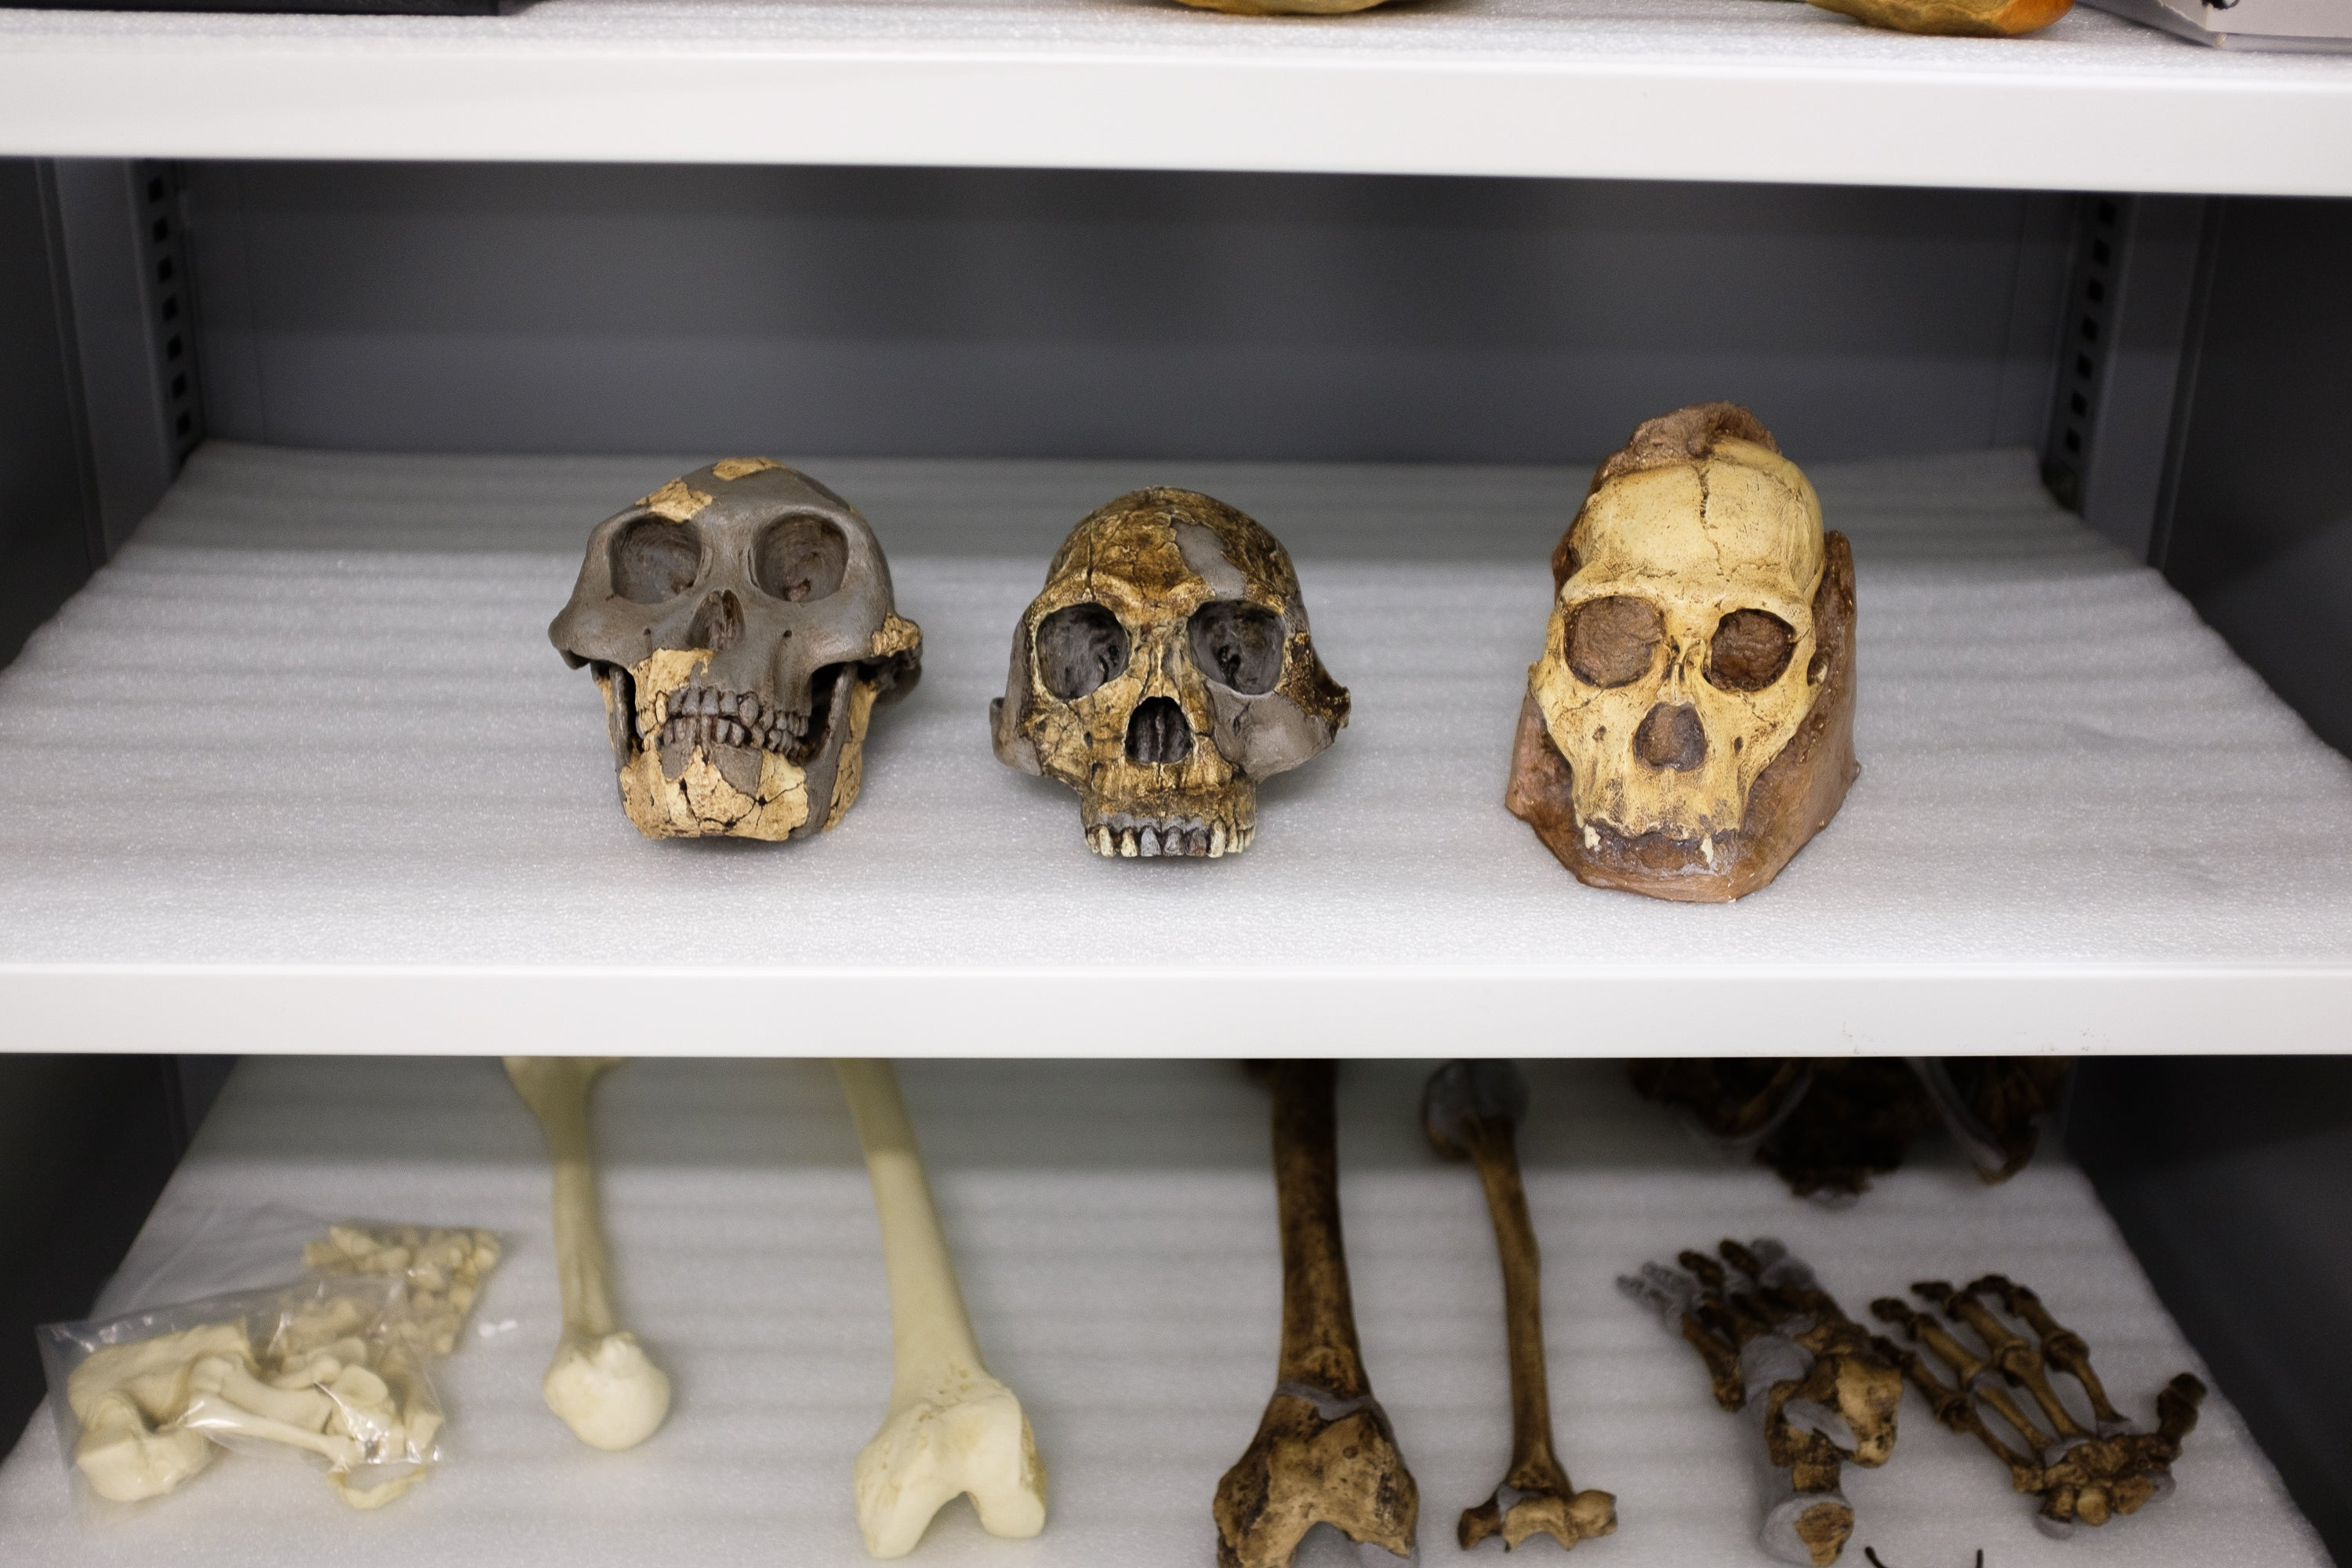 New Analysis Debunks Controversial Claim About The Origin Of Humanity